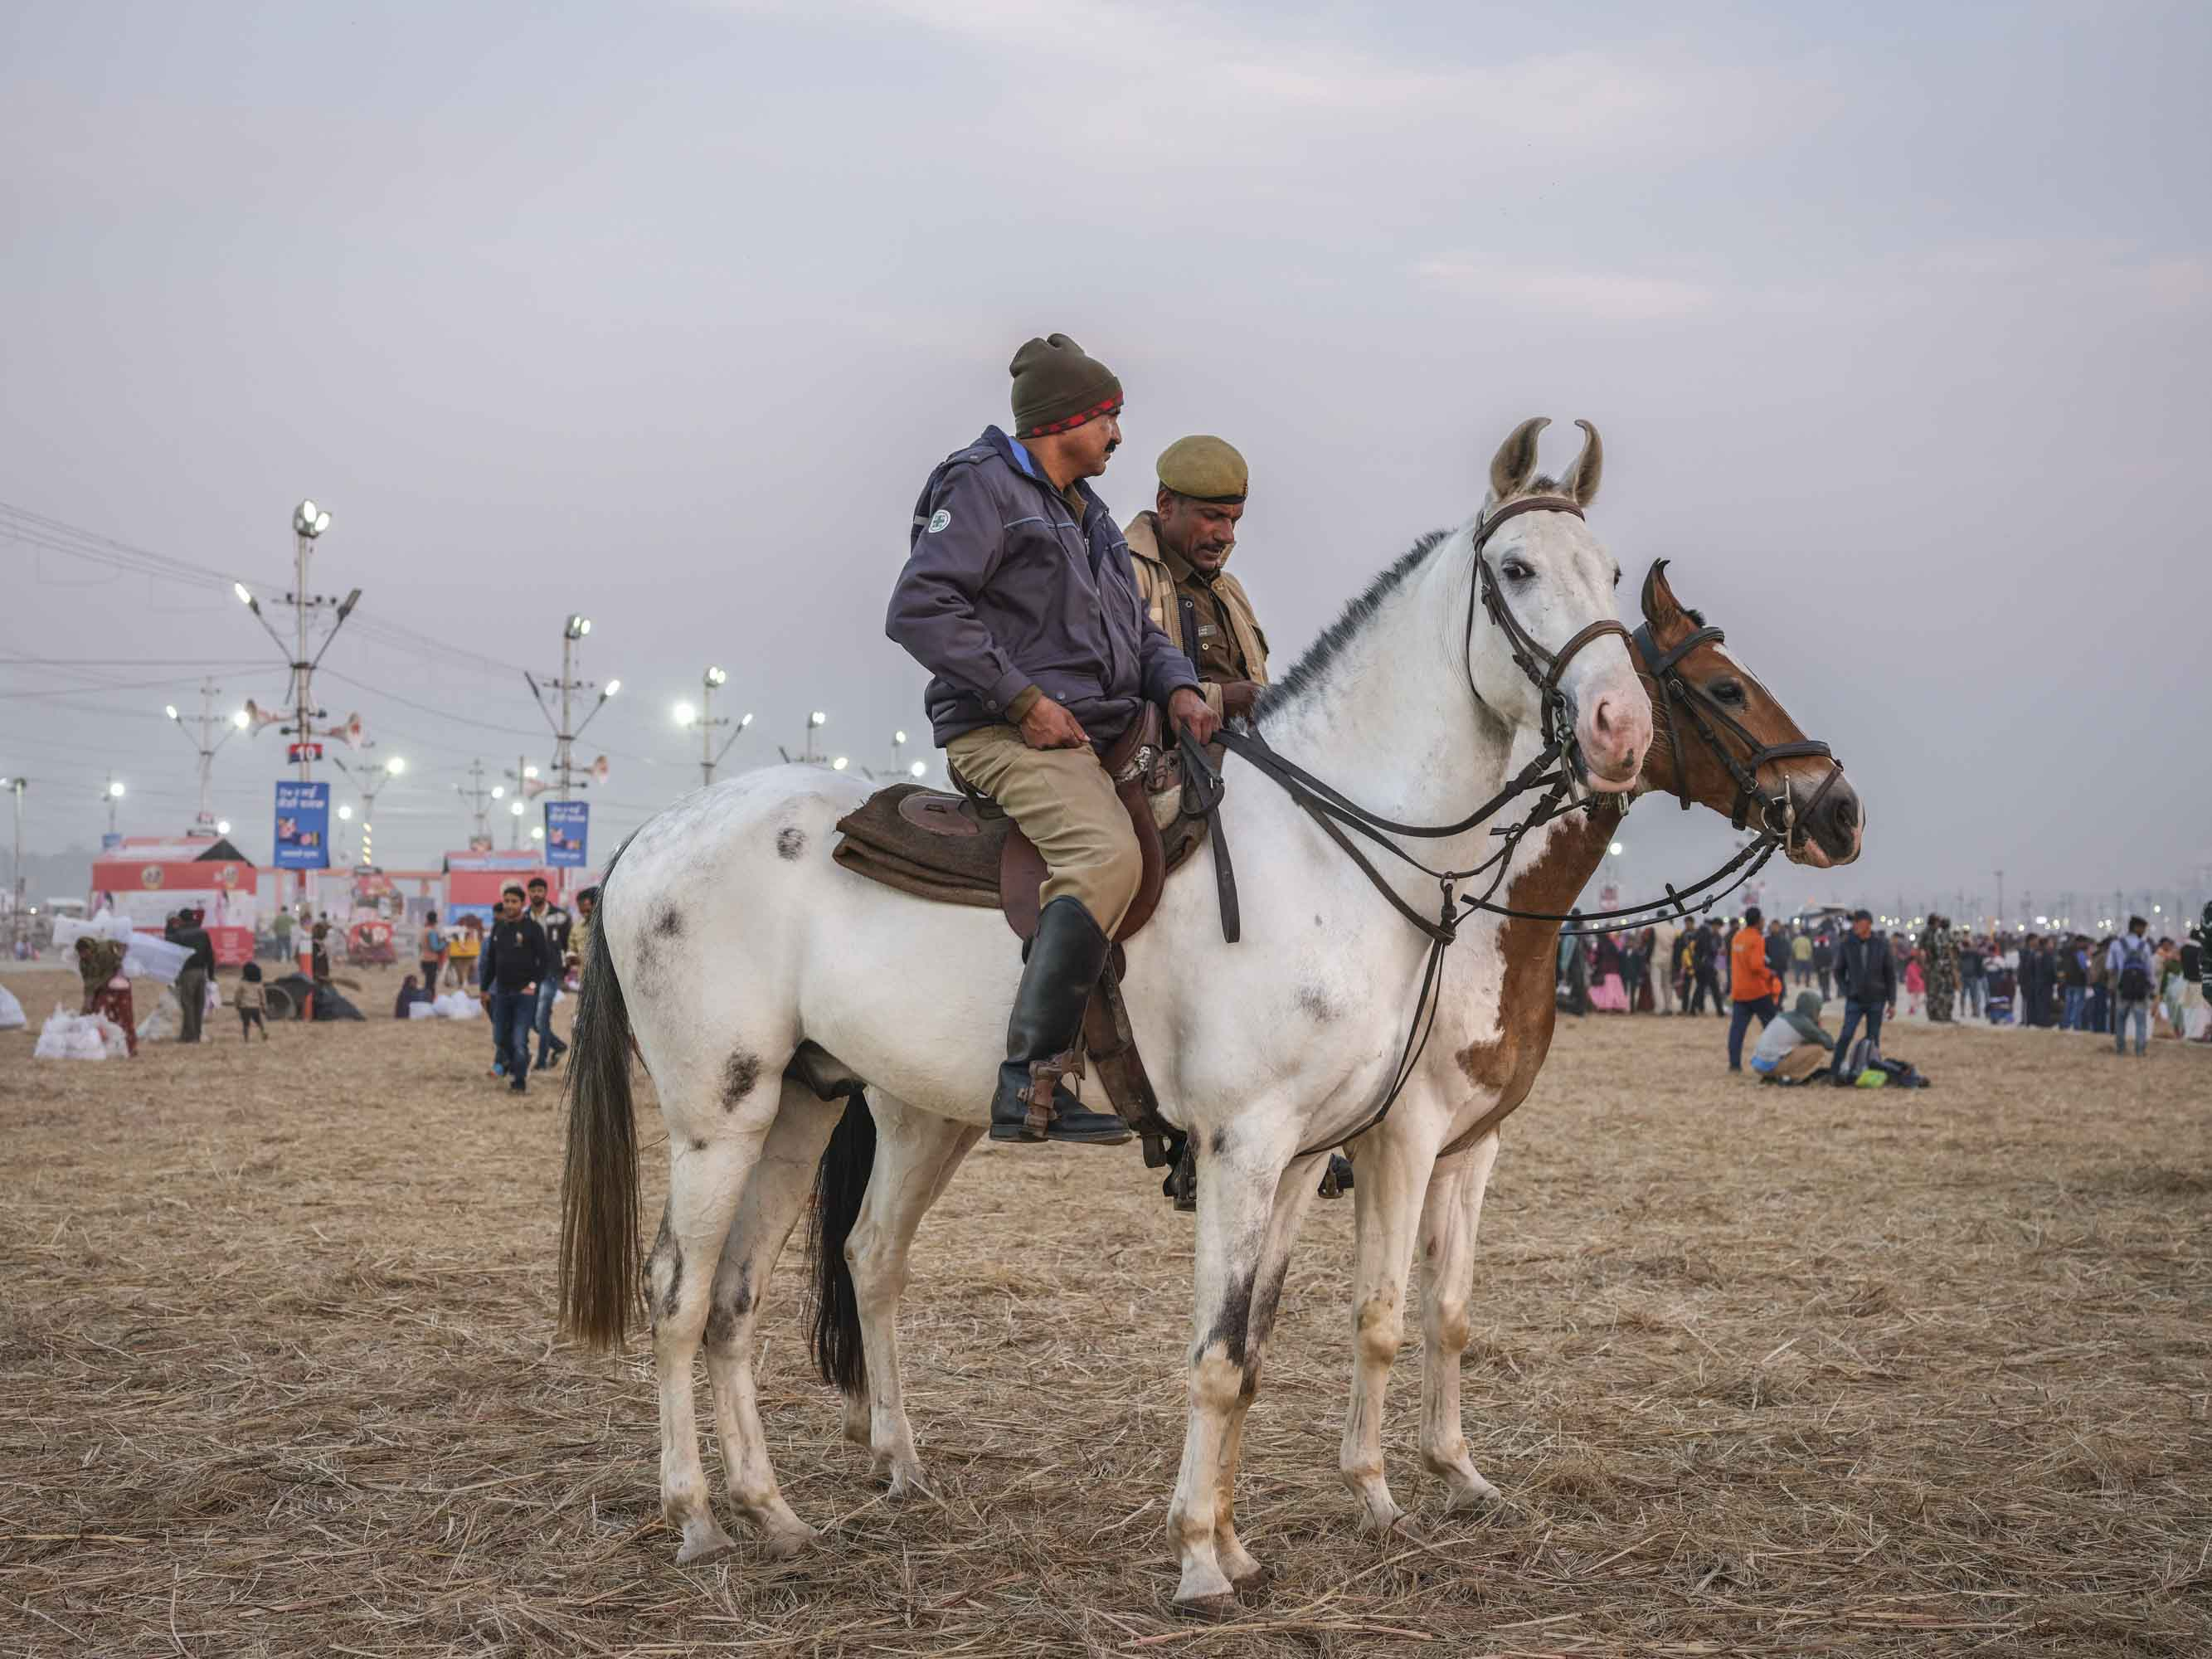 policeman army military on horses pilgrims Kumbh mela 2019 India Allahabad Prayagraj Ardh hindu religious Festival event rivers photographer jose jeuland photography